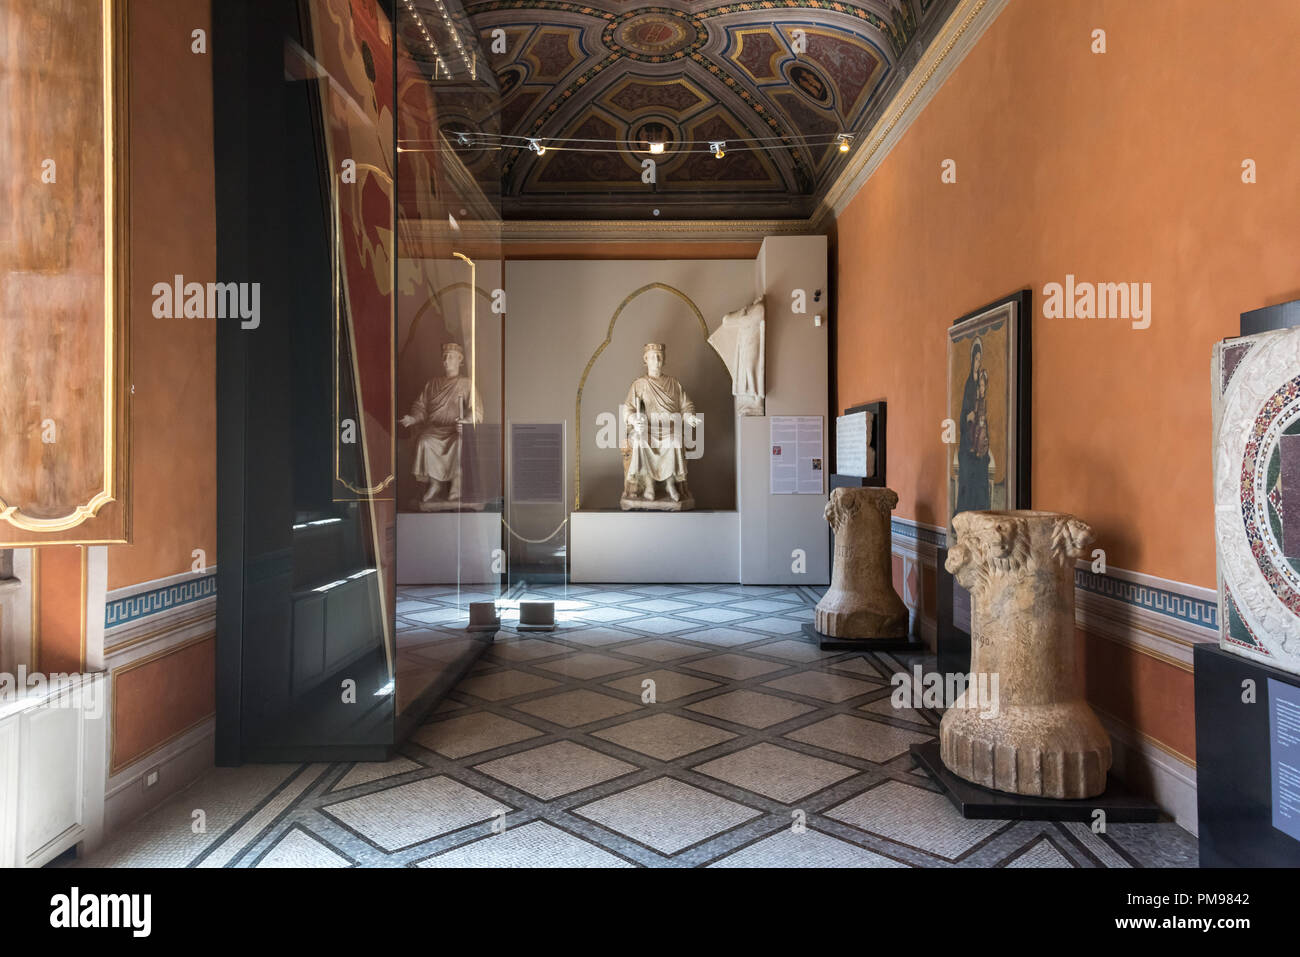 Hall of Middle Ages, Capitoline Museums, Rome, Italy - Stock Image